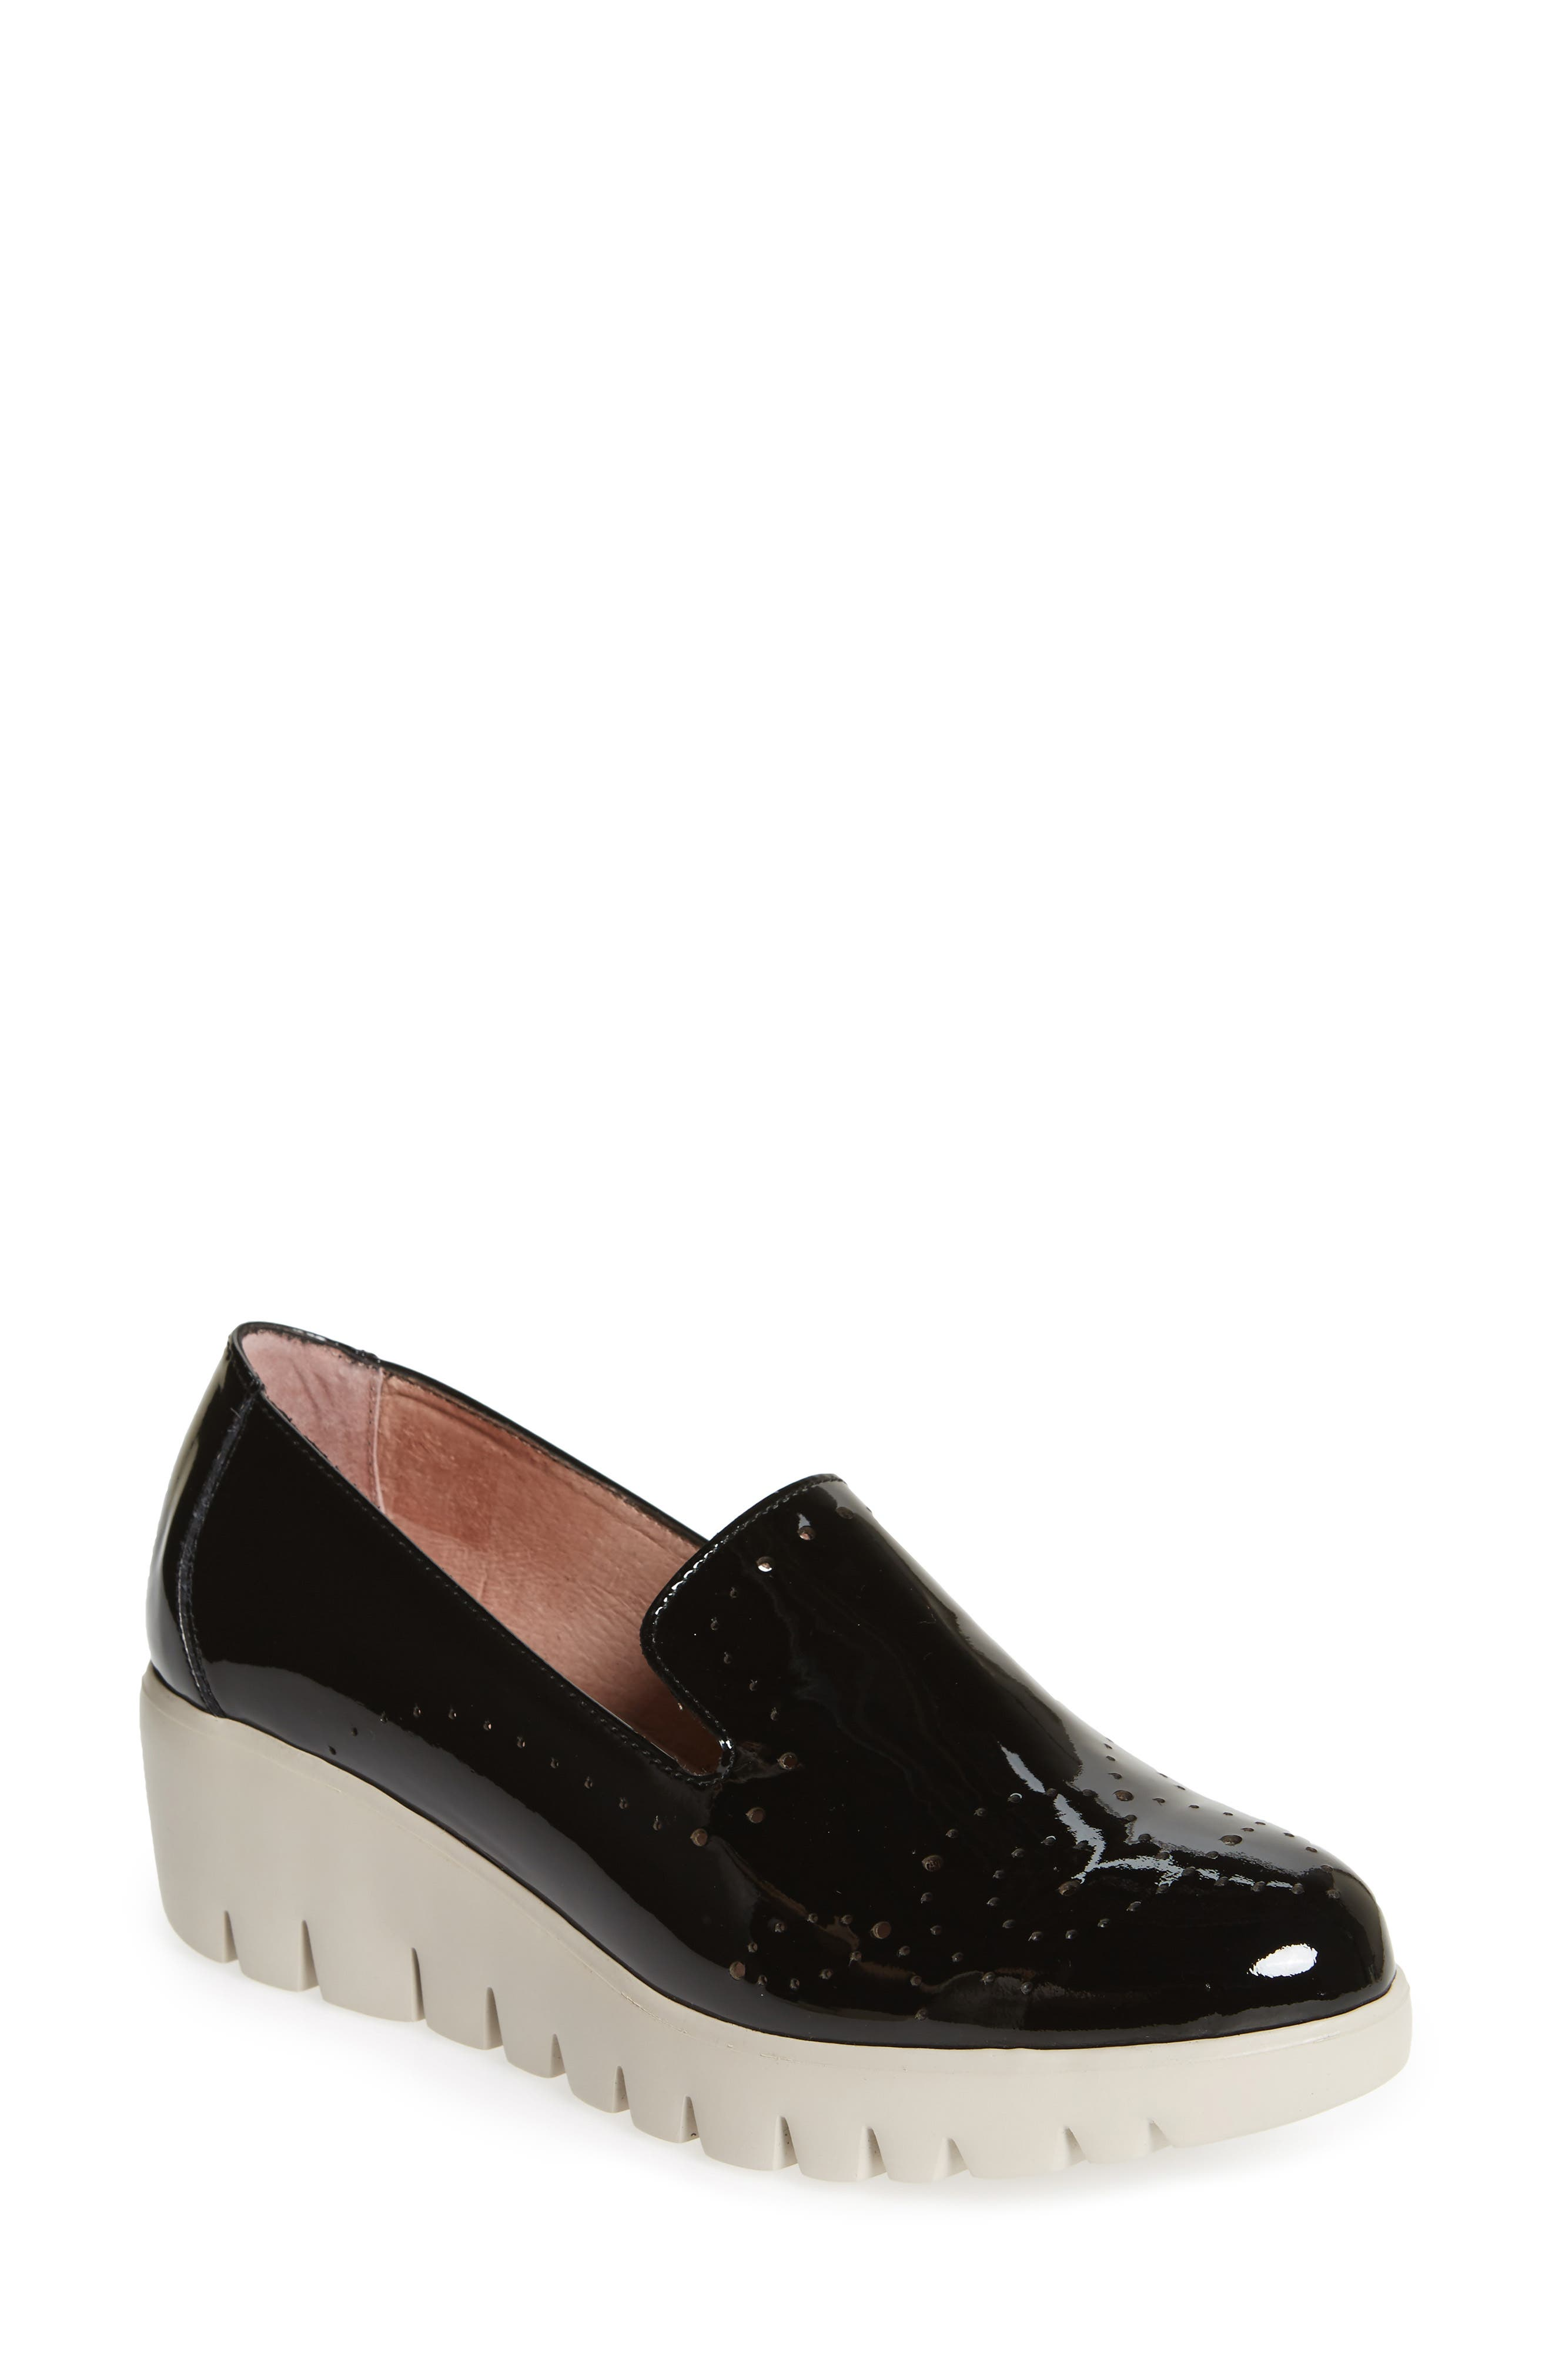 C-33114 Loafer Wedge,                             Main thumbnail 1, color,                             BLACK LEATHER